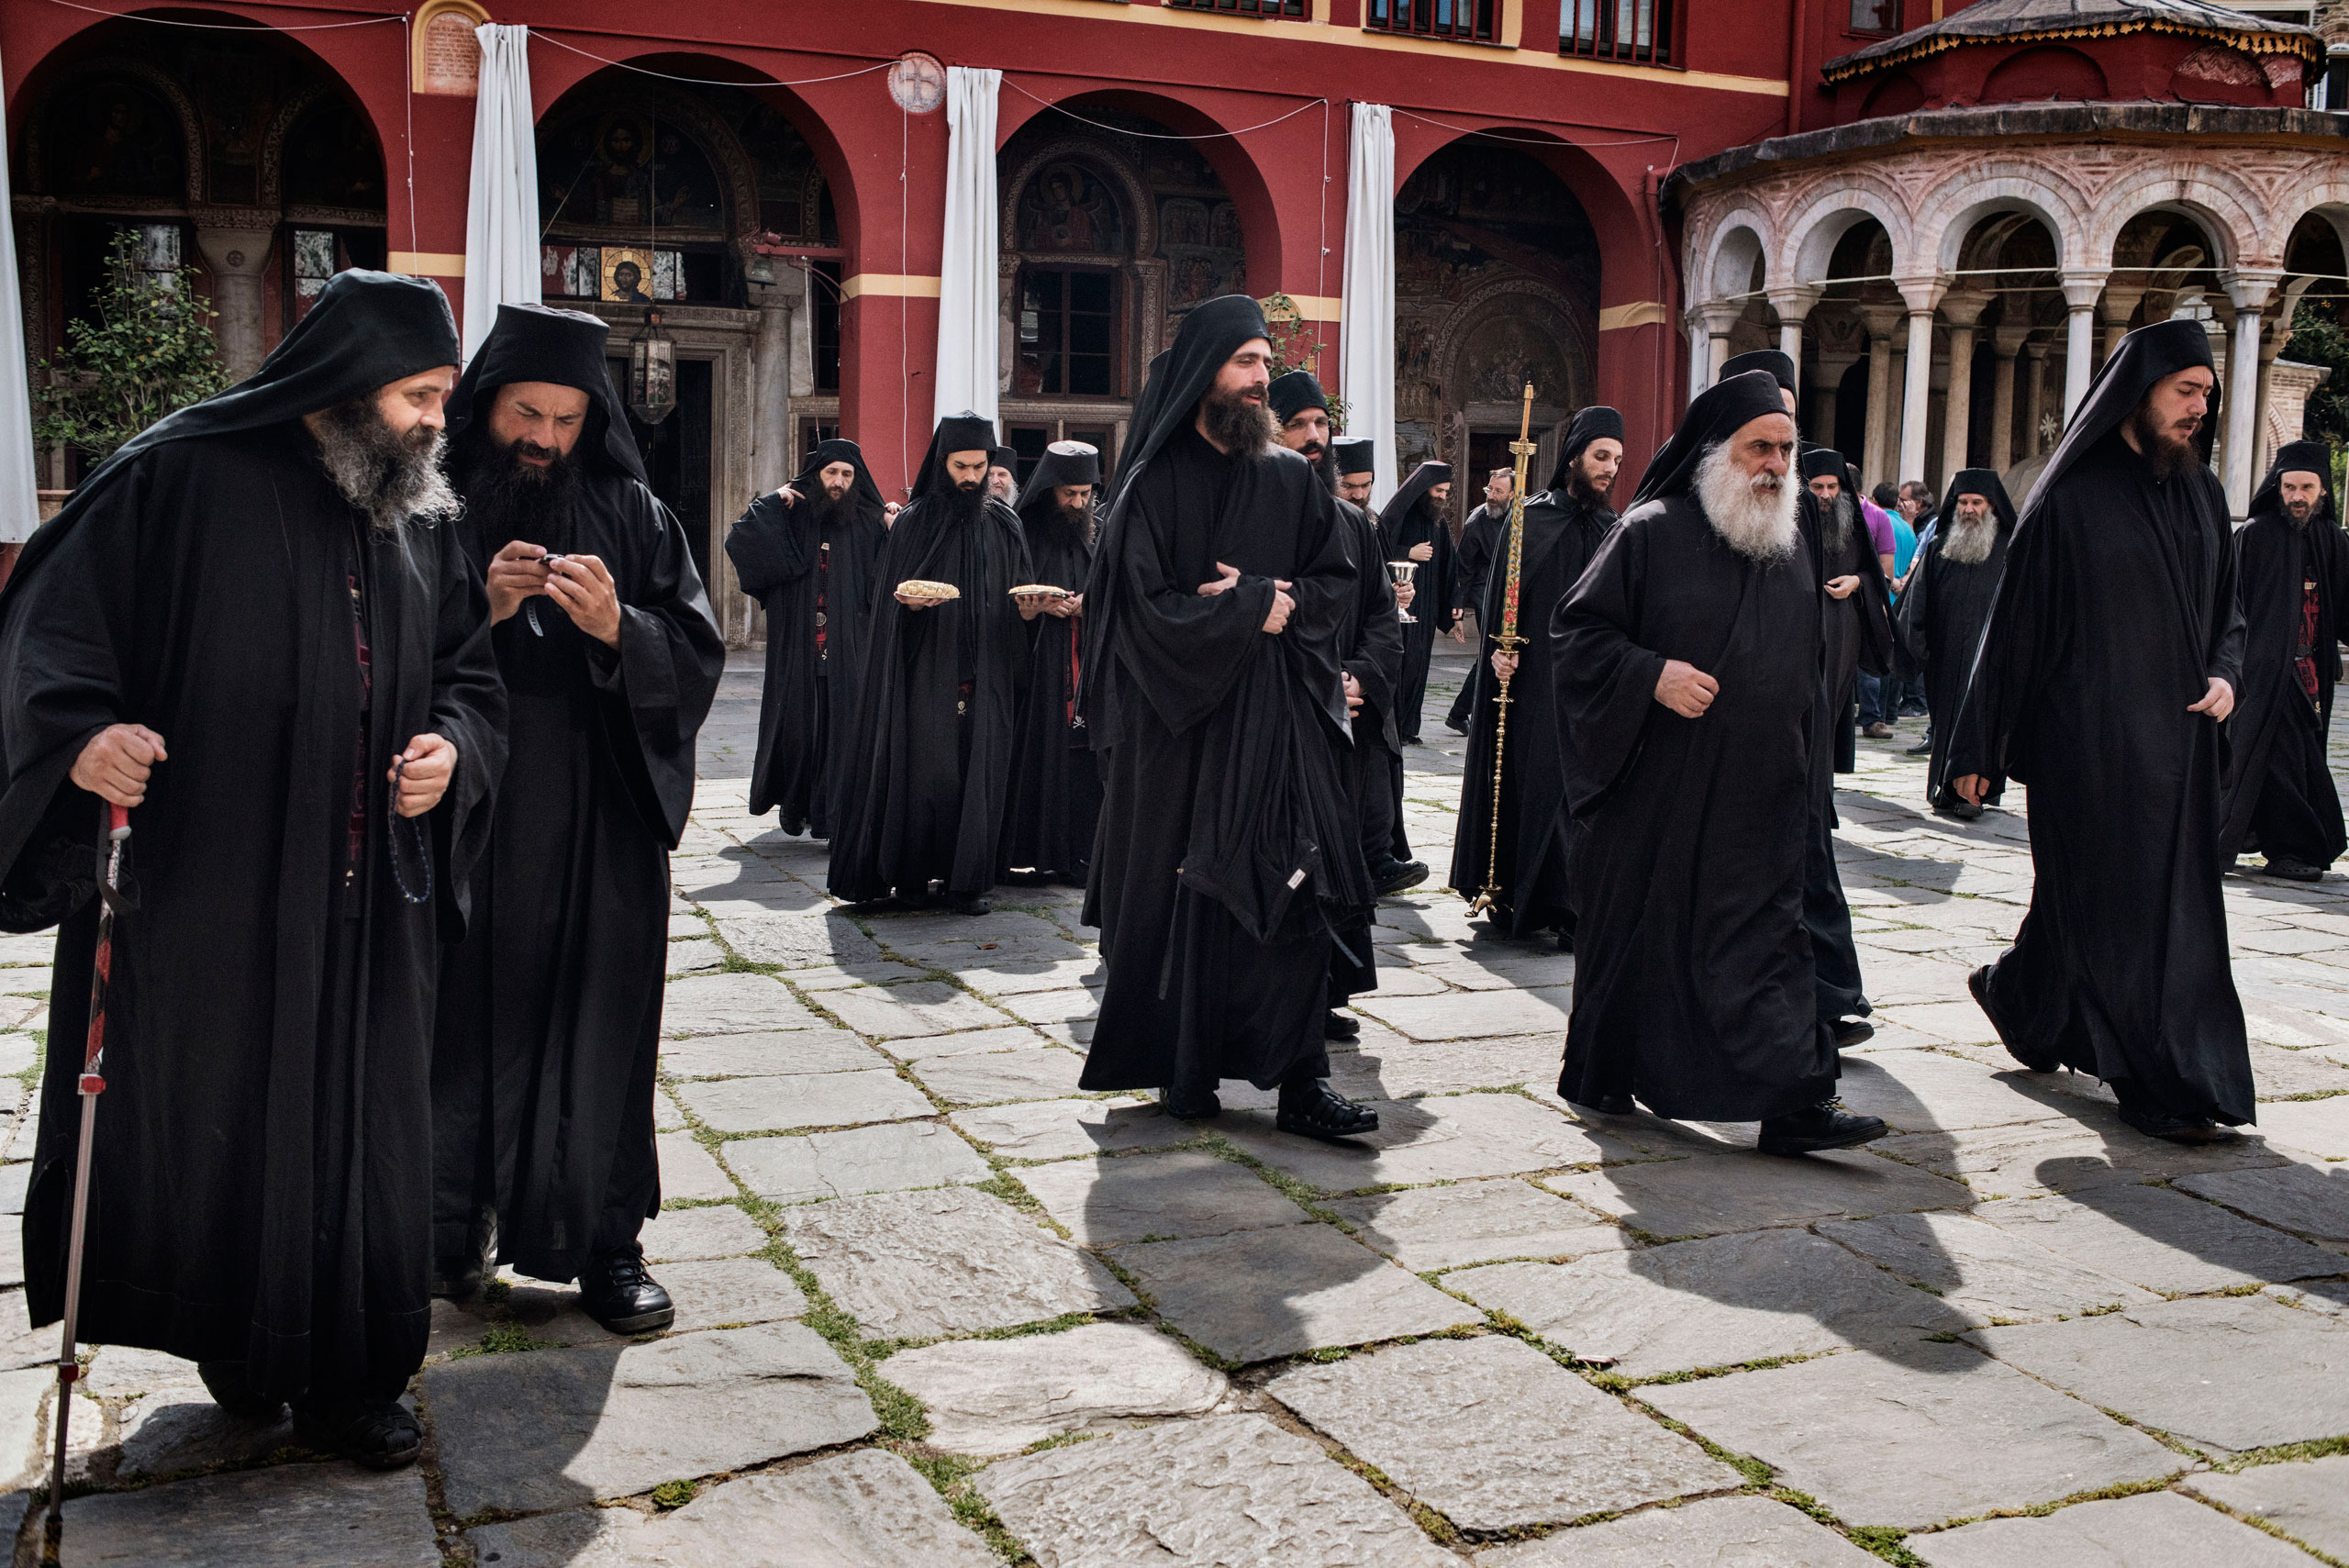 Orthodox monks walk from the main church to the refectory, or dining hall, at the Greek Monastery of Vatopedi, on Mount Athos, Greece, May 29, 2016.